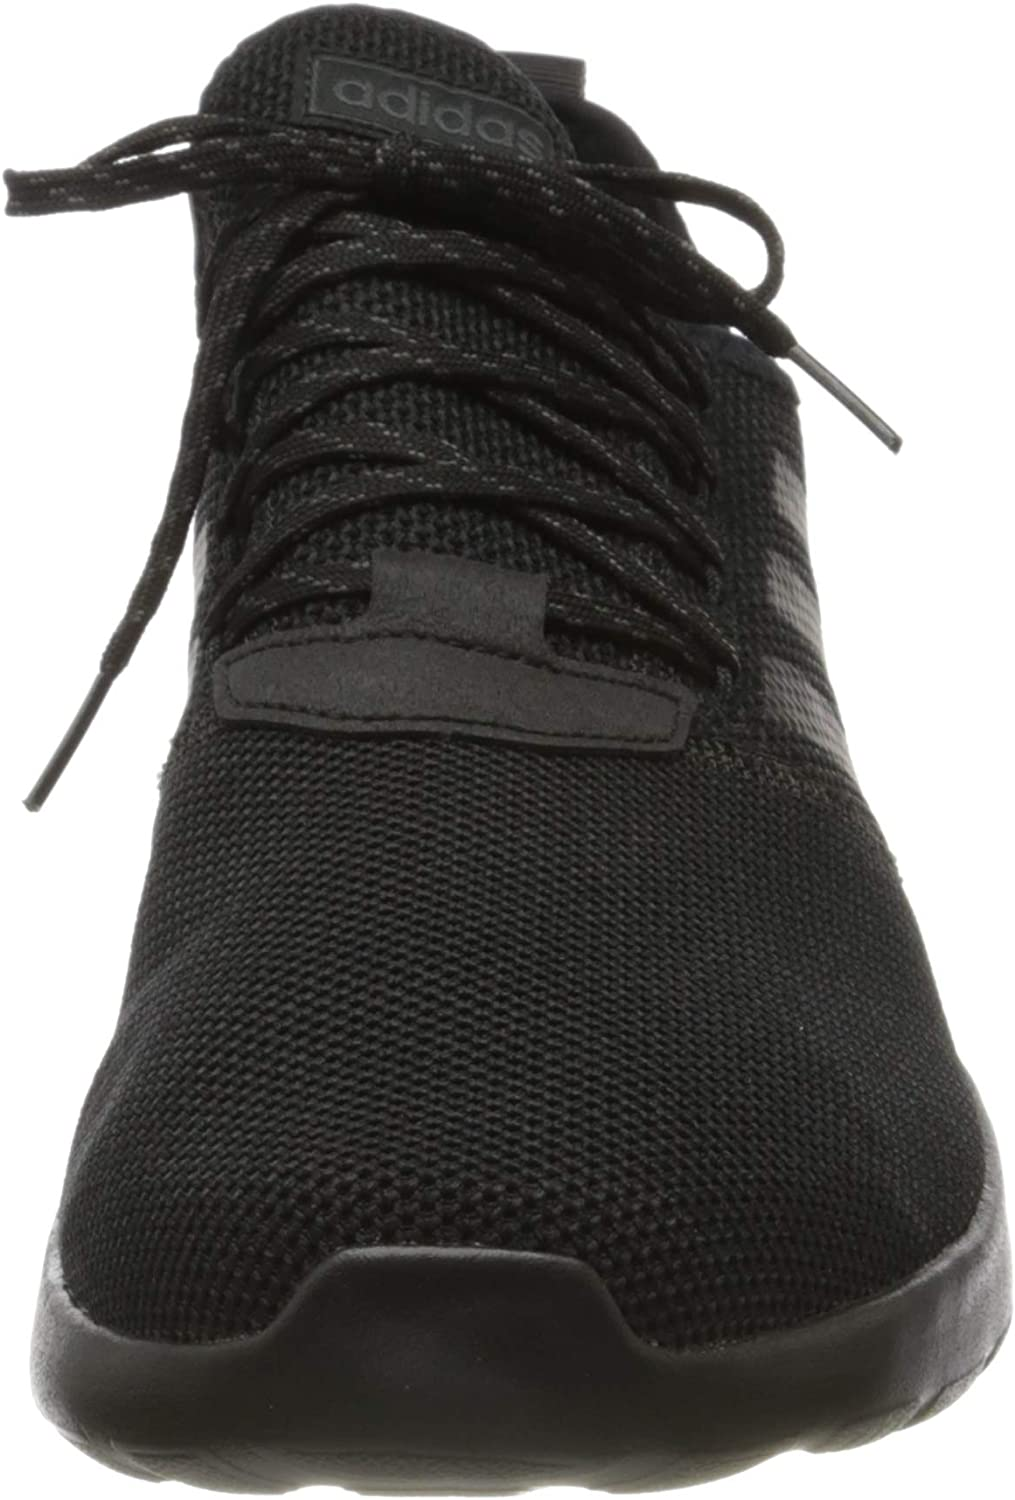 adidas Lite Racer Rbn F36642 Sneakers Basses Homme